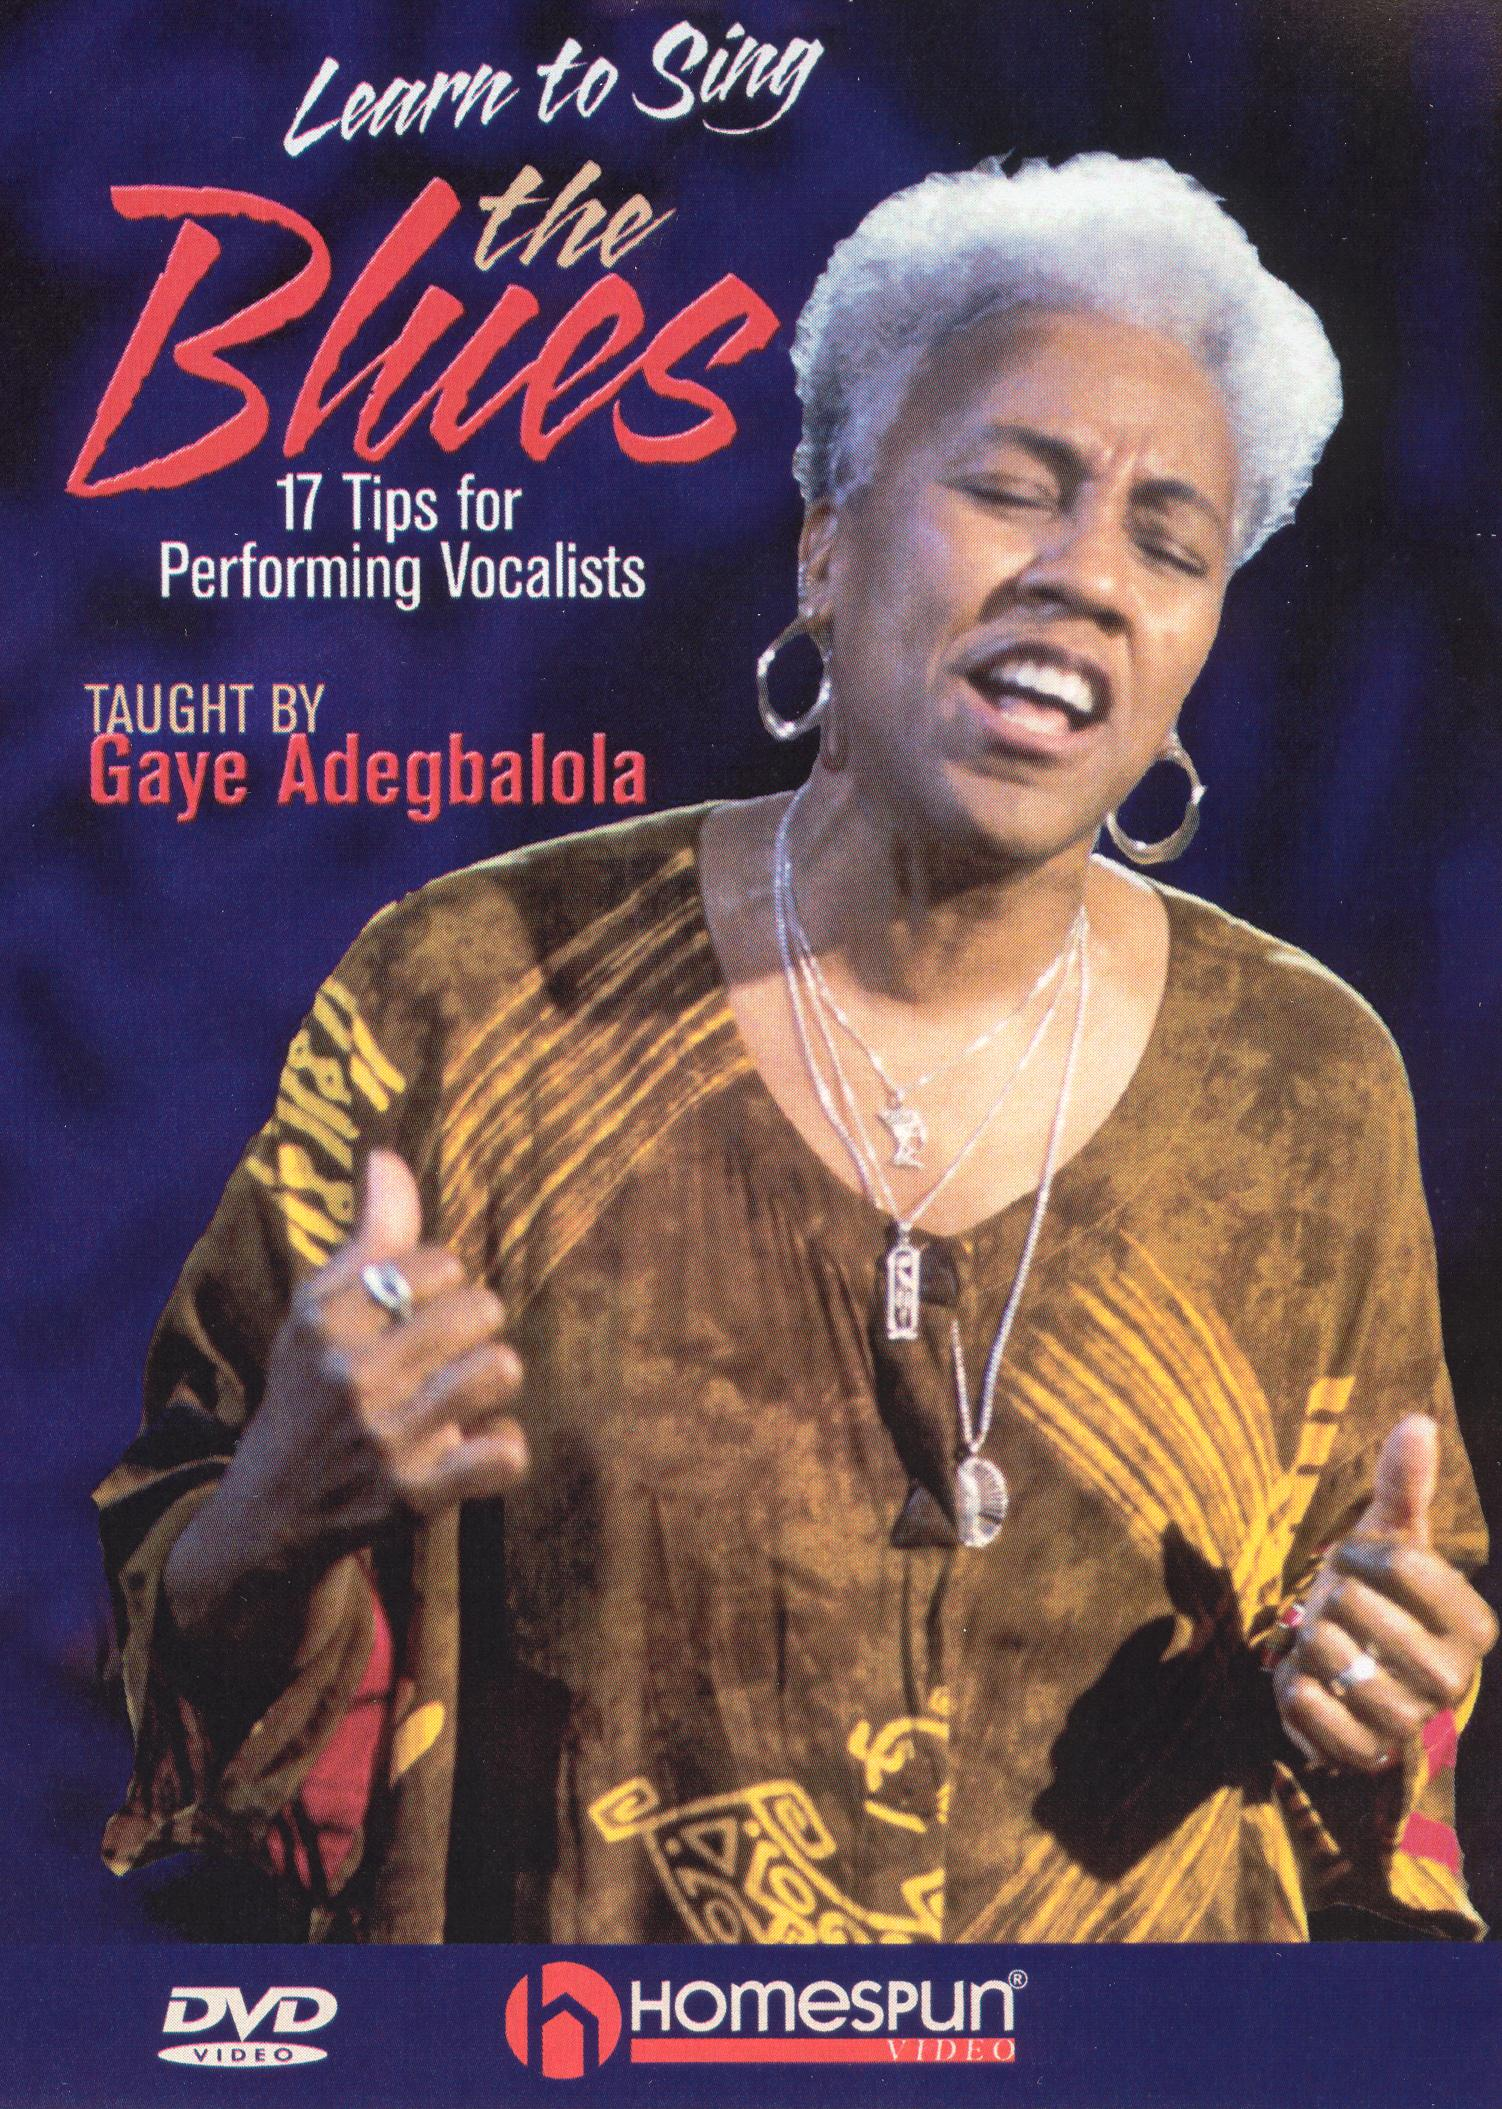 Gaye Adegbalola: Learn to Sing the Blues